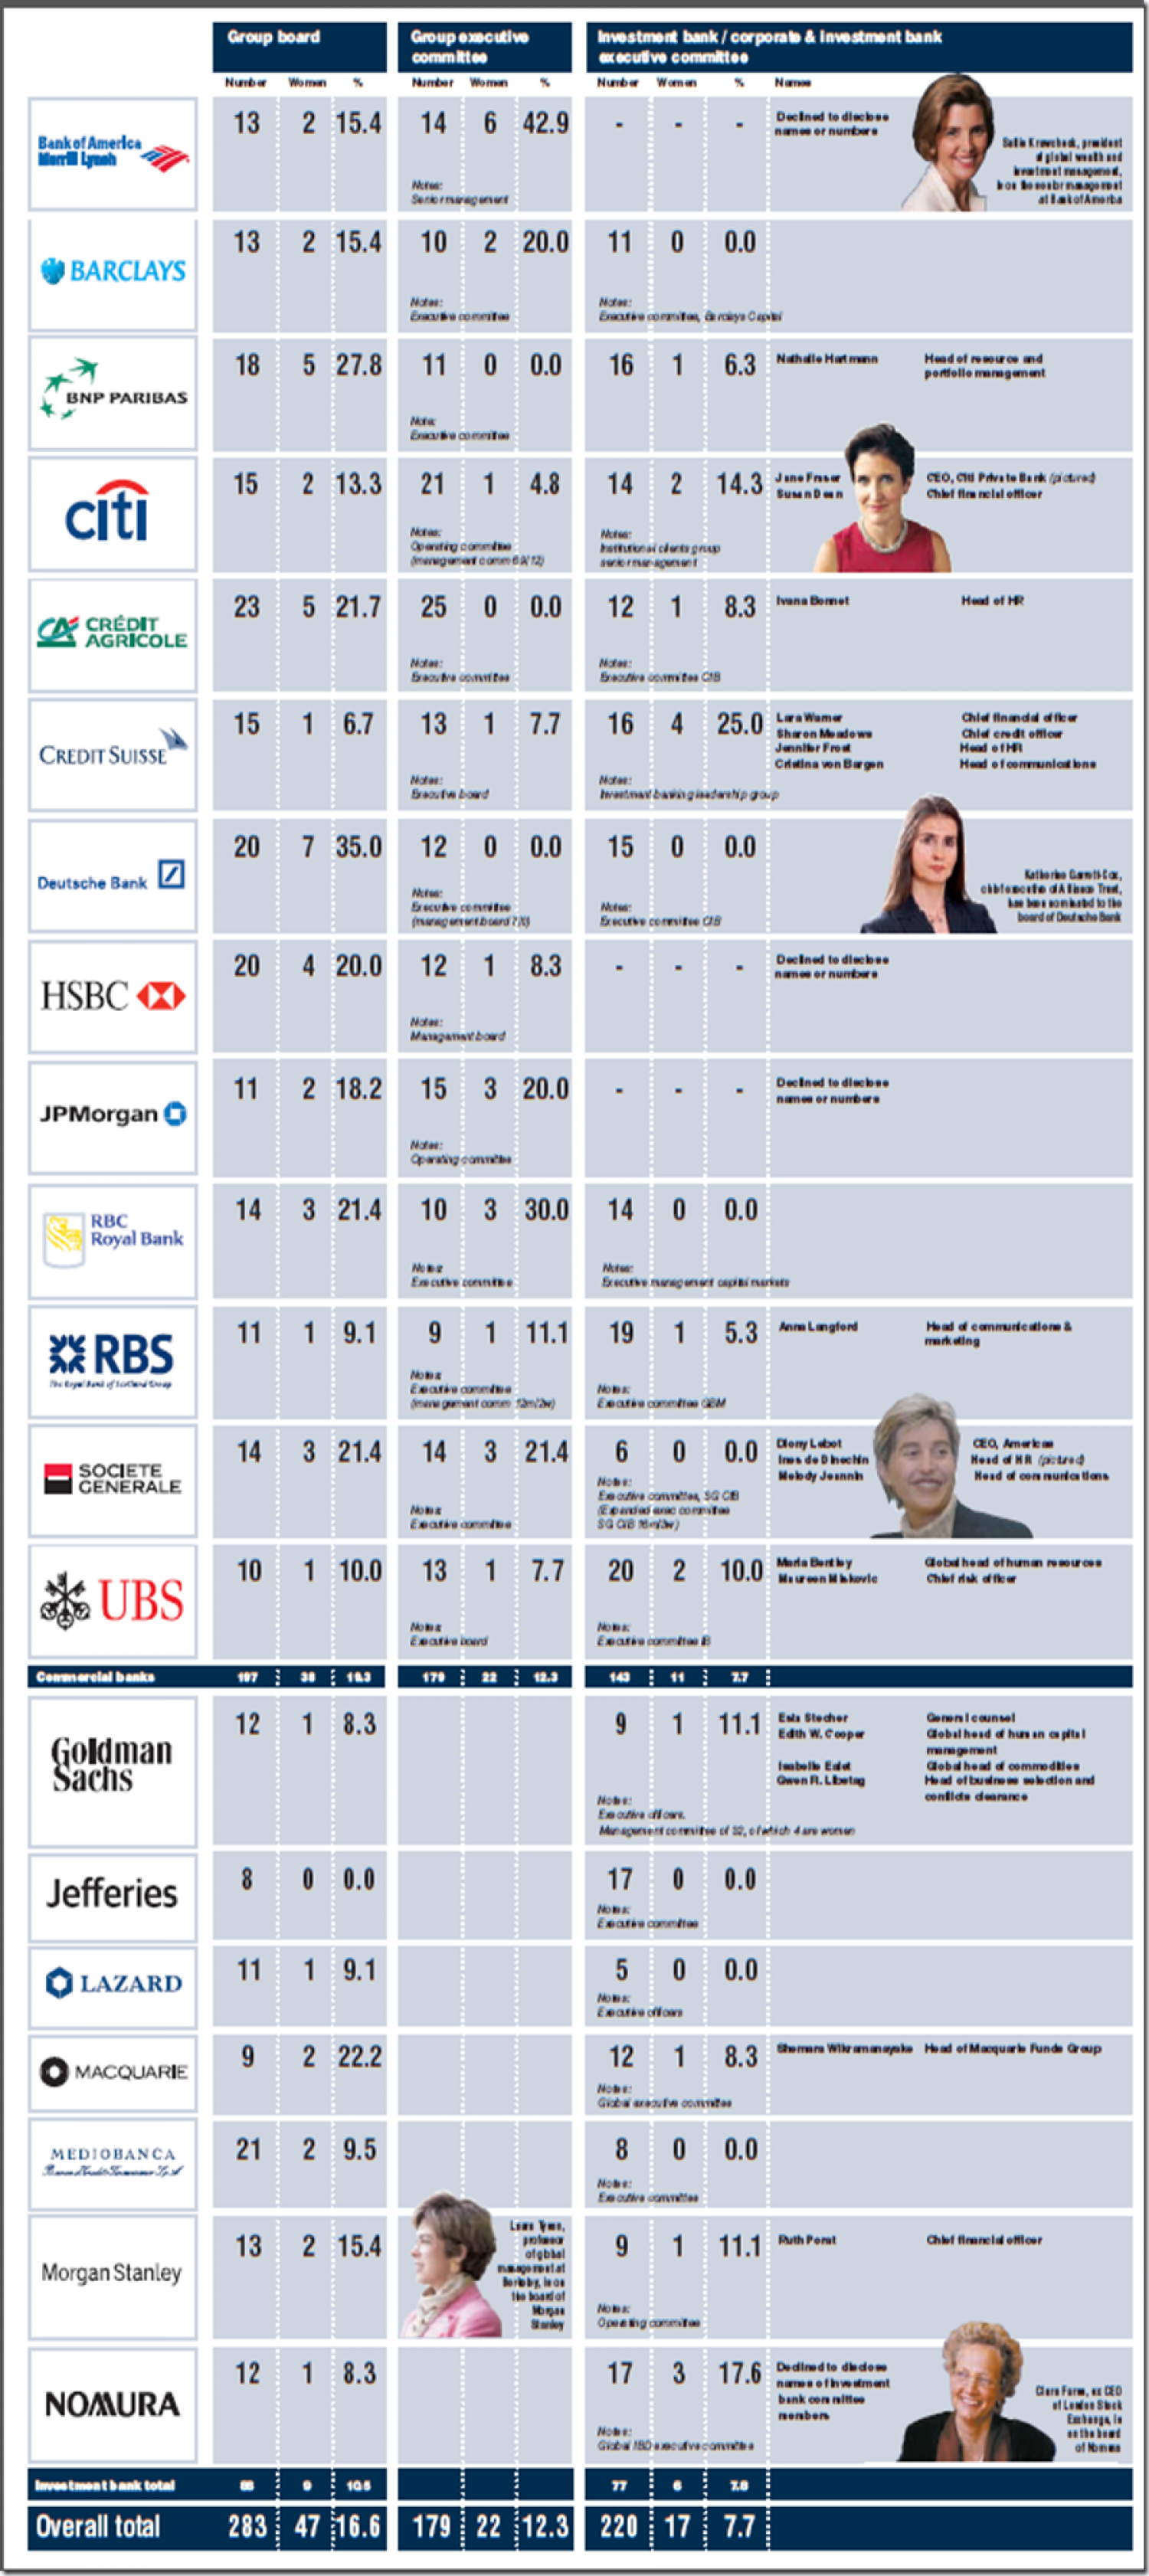 How many women are on boards at financial institutions? Infographic